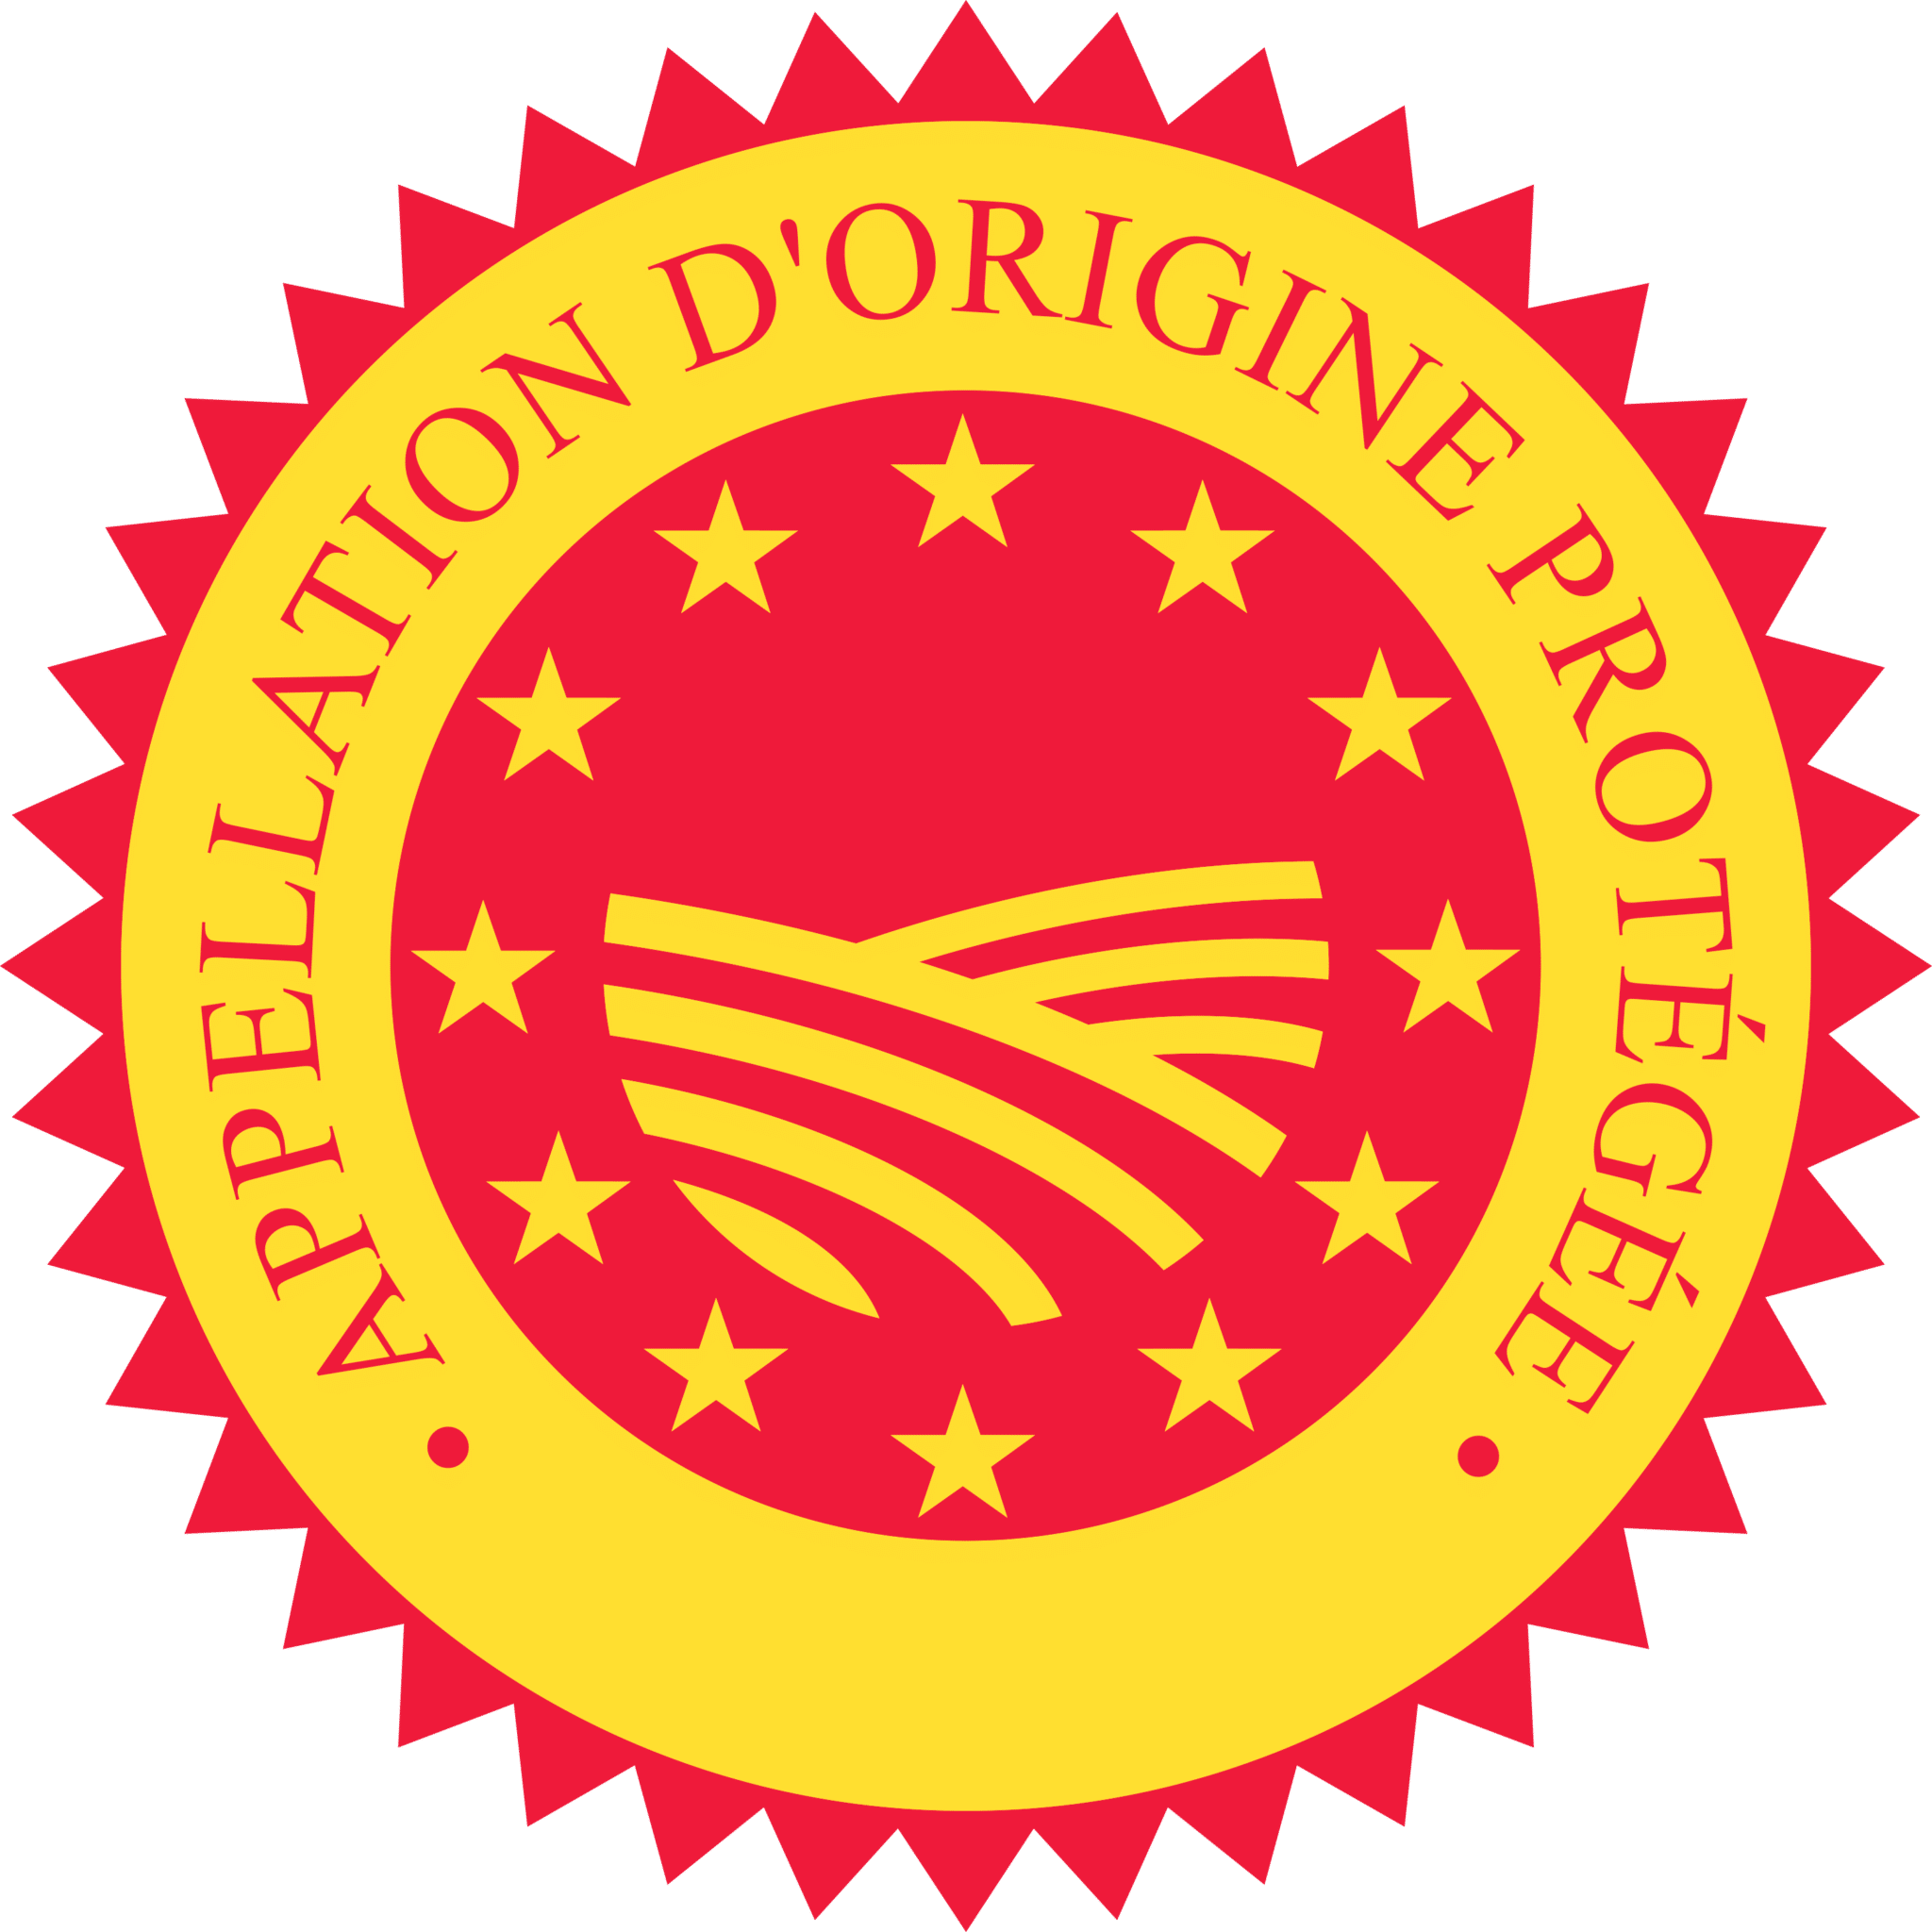 logo-Appellation-Origine-Protegee-AOP